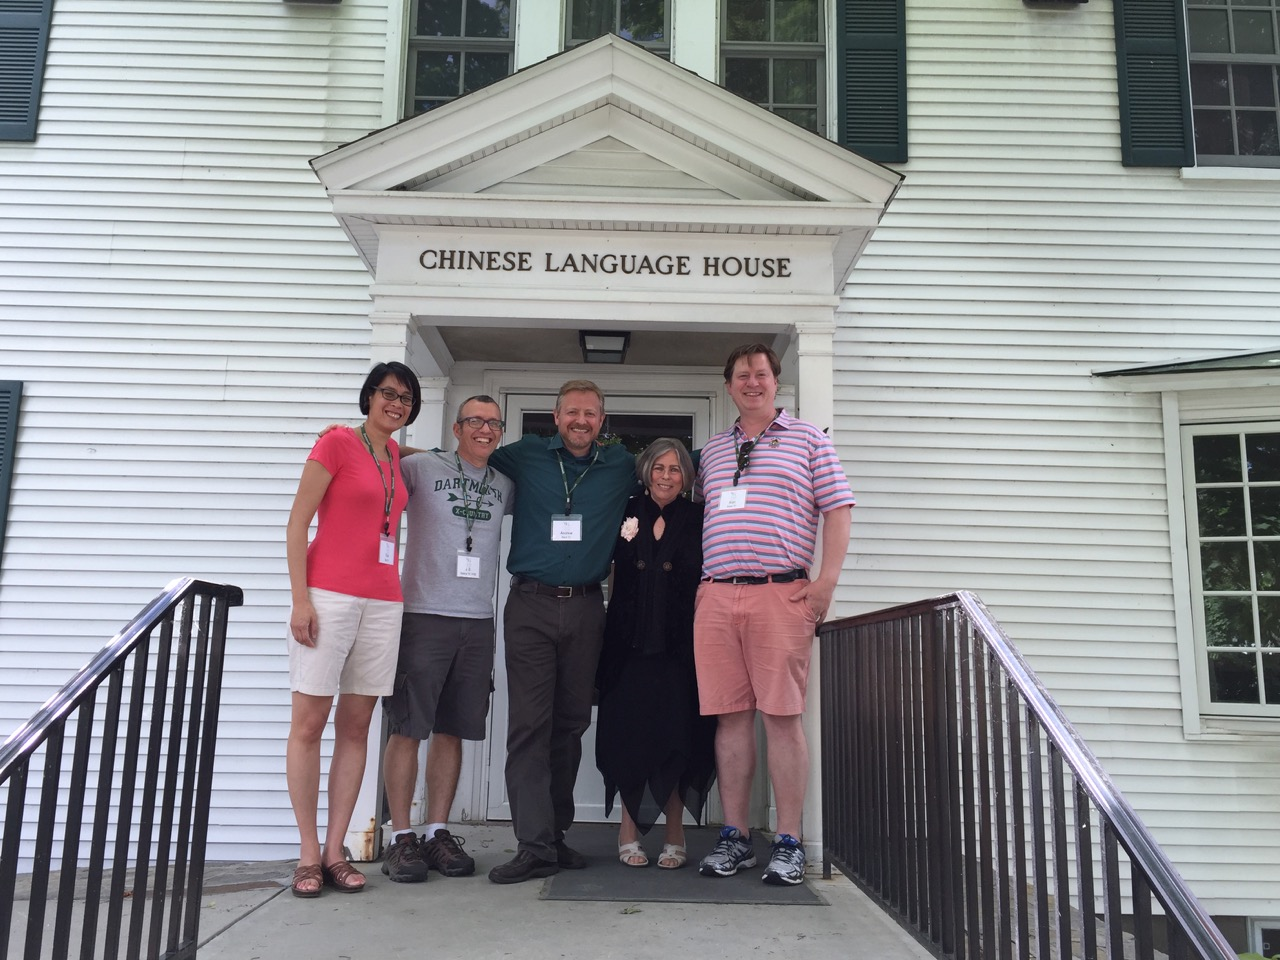 At the front steps of the Chinese Language House (formerly the Asian Studies House) with fellow '91s Tina Yen, J.D. Optekar, and Alan Seem, and our Chinese language professor, Dr. Susan Blader (白老师)